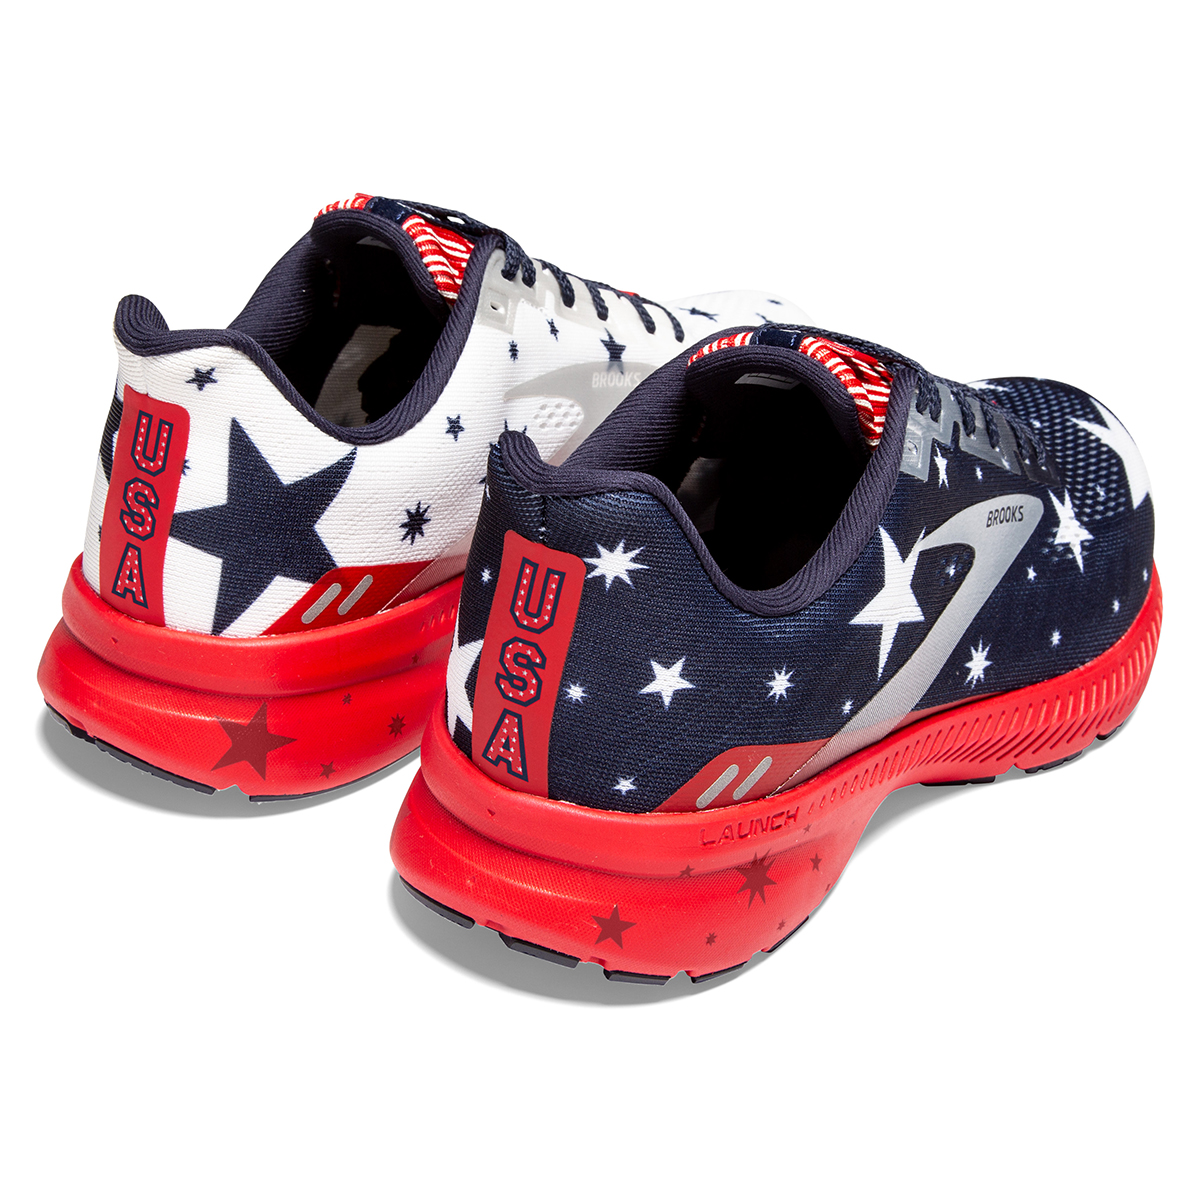 Women's Brooks Launch 8 Running Shoe - Color: Blue/Red/Silver - Size: 5 - Width: Regular, Blue/Red/Silver, large, image 7